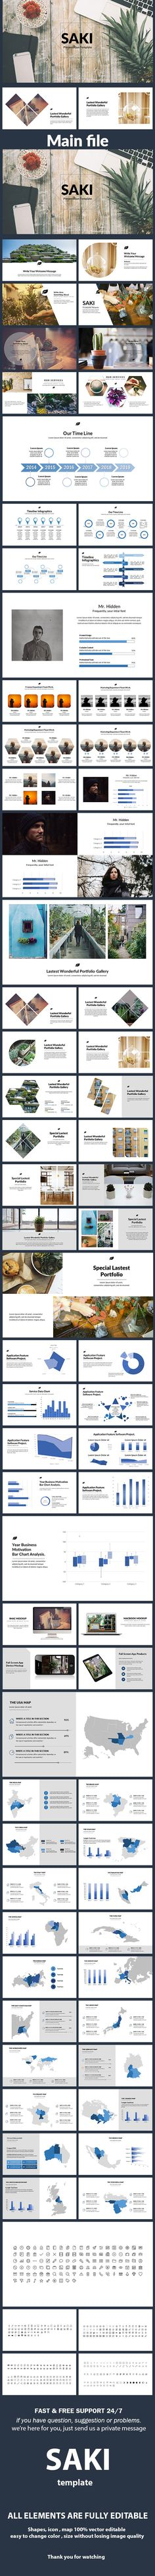 Saki - Google Slide Template - #Google Slides #Presentation #Templates Download here: https://graphicriver.net/item/saki-google-slide-template/19533694?ref=alena994